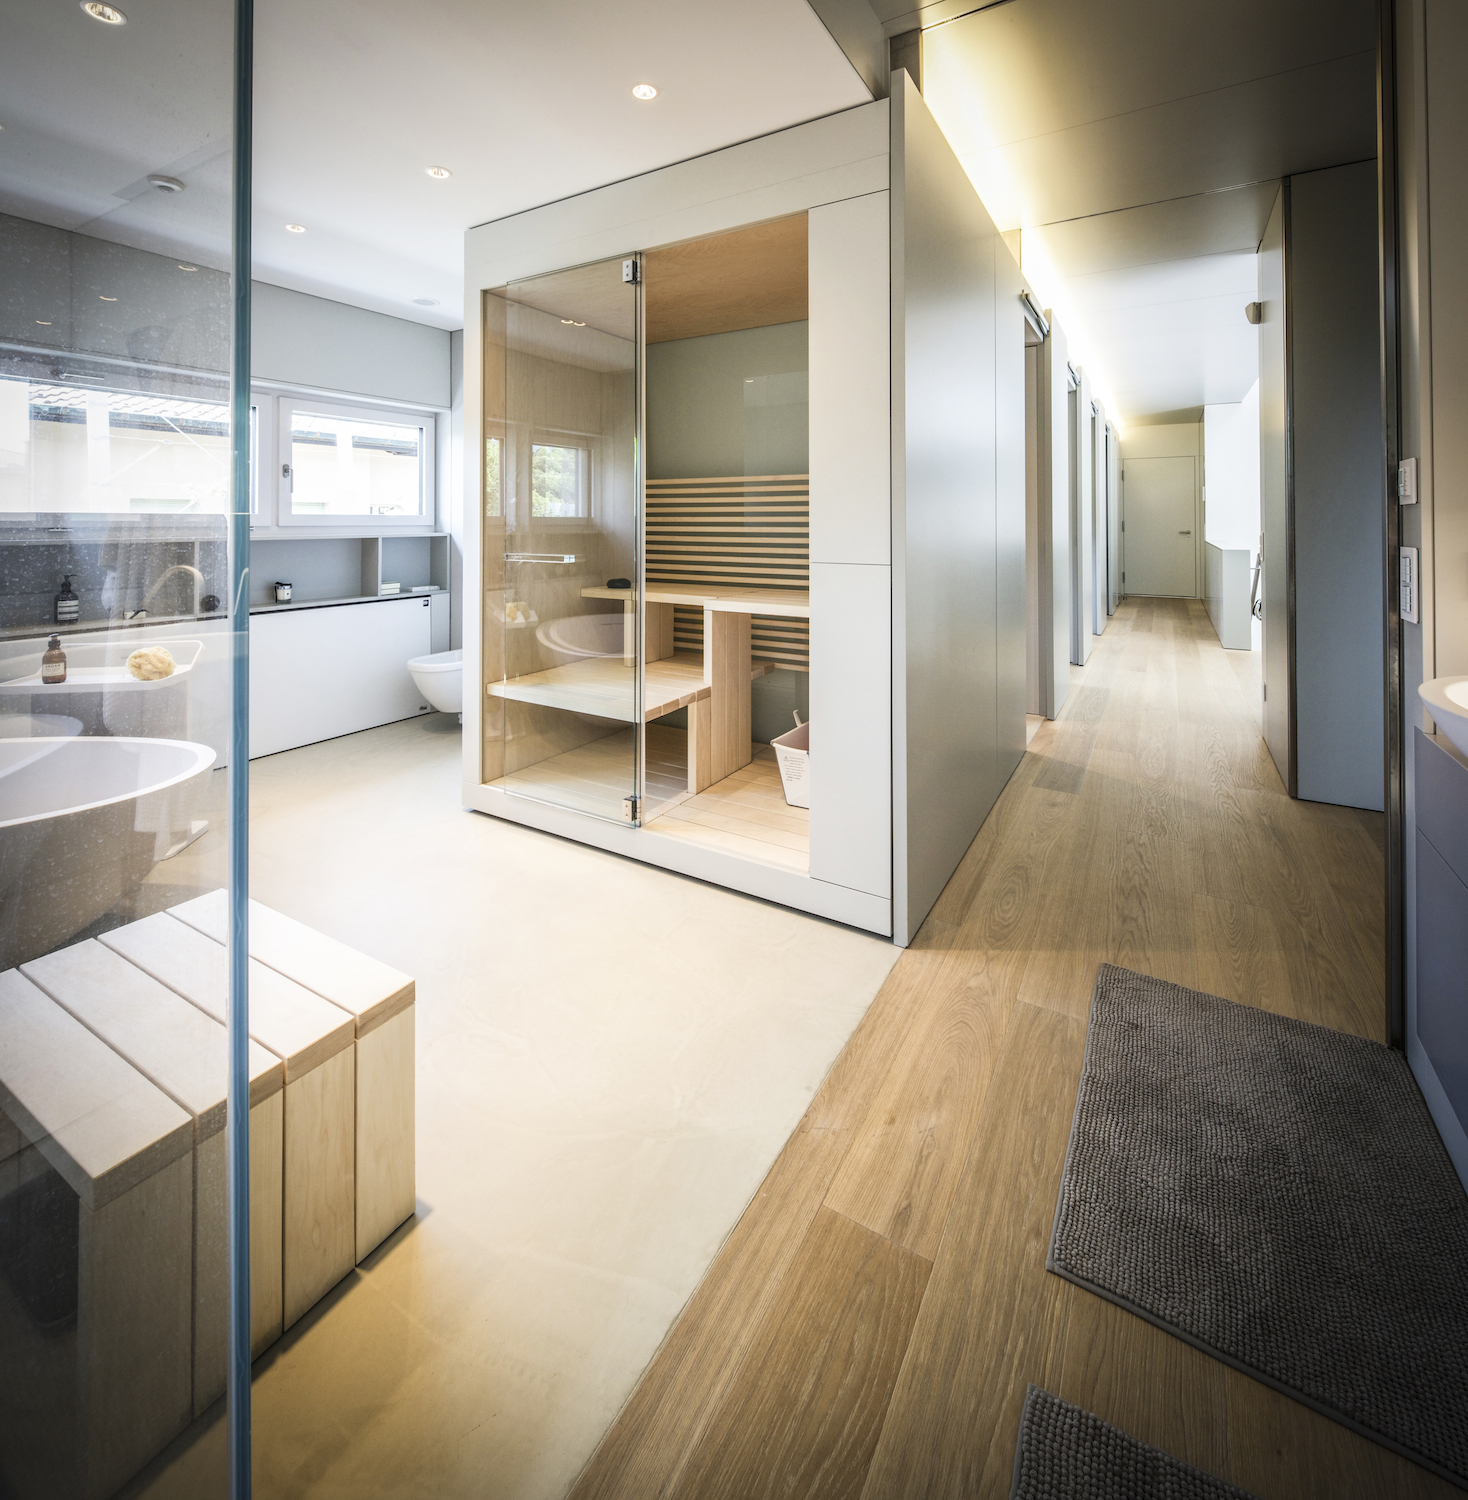 Sauna privata in zona wellness roberto nangeroni photography for Architetto per interni